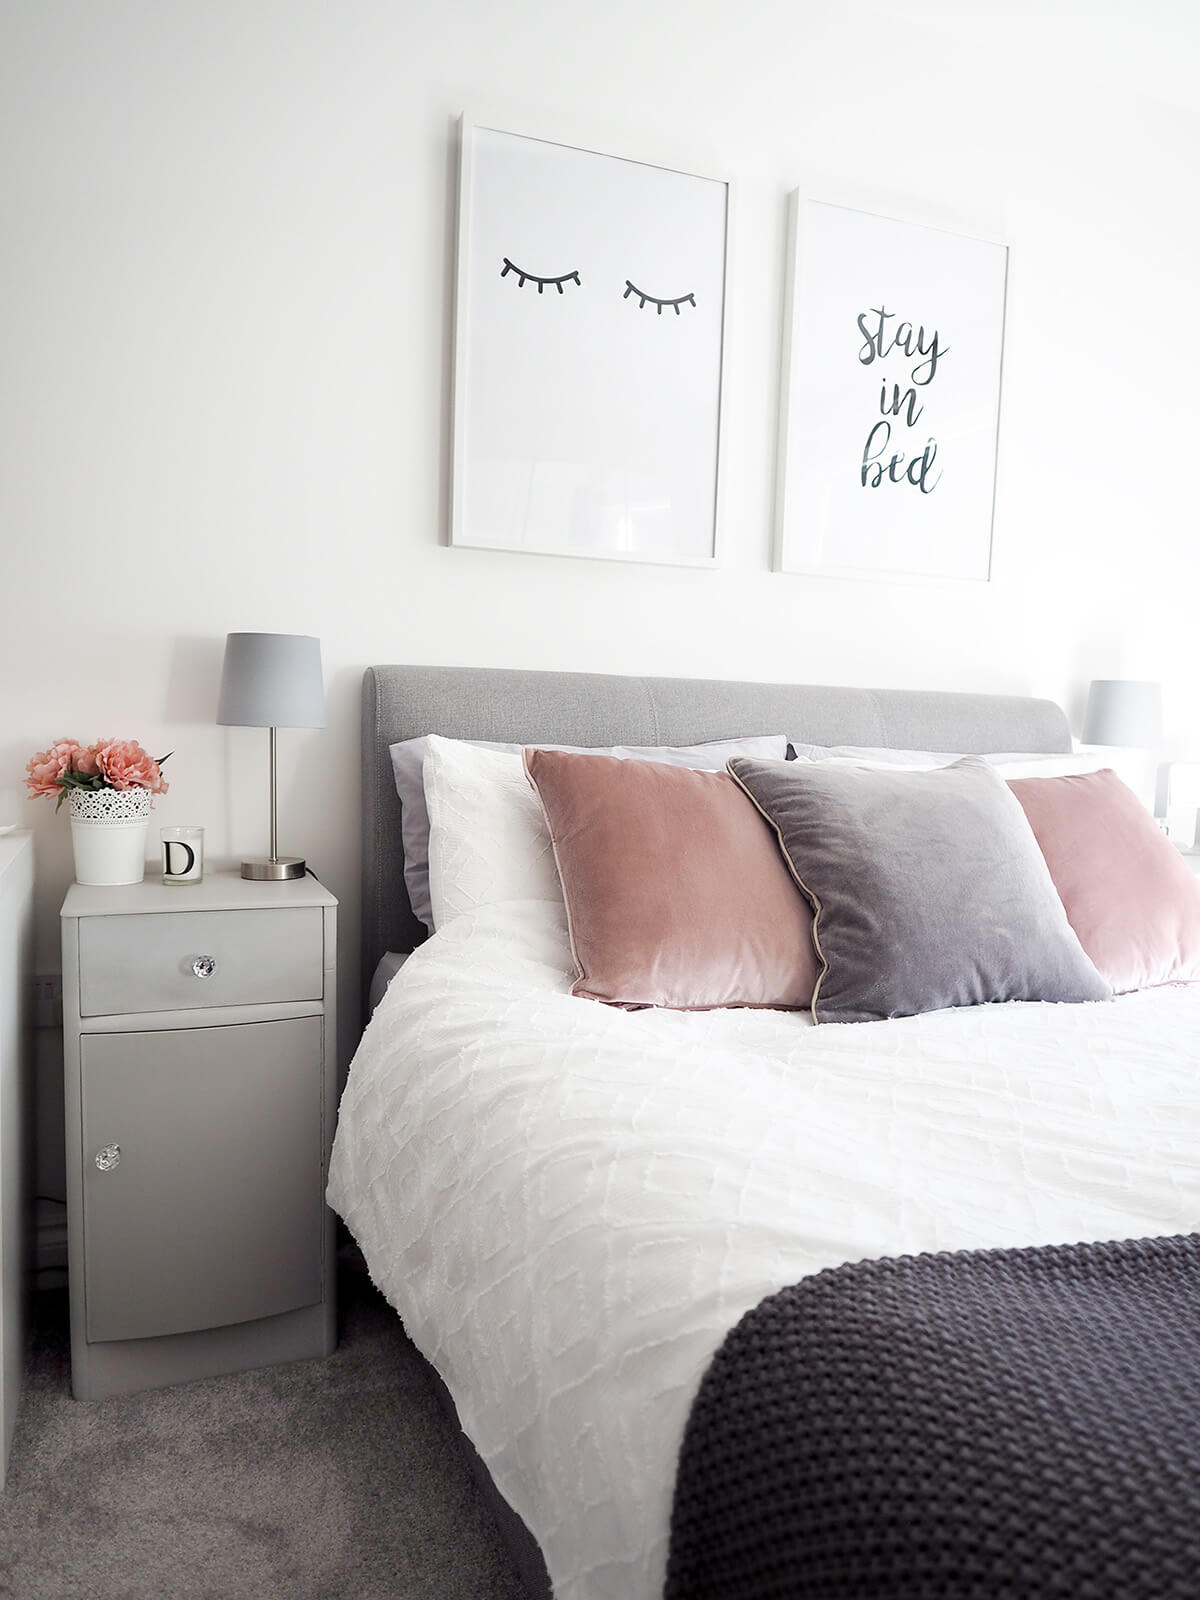 14 Trendy Bedroom Design And Decor Ideas For Your Next Makeover